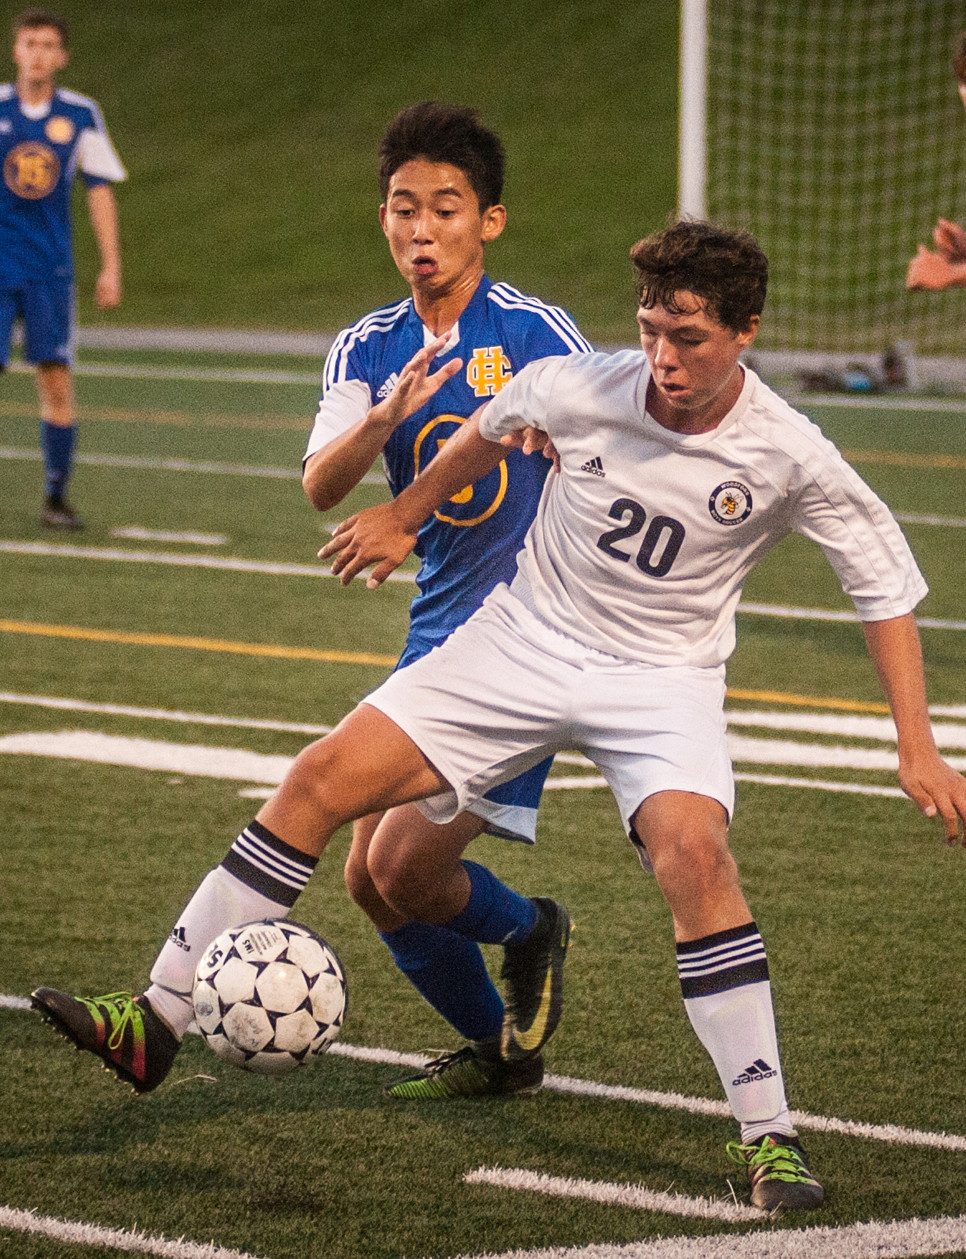 DREW BLAYDES battles for position against Henry Clay on Sept. 14. (Photo by Bill Caine)